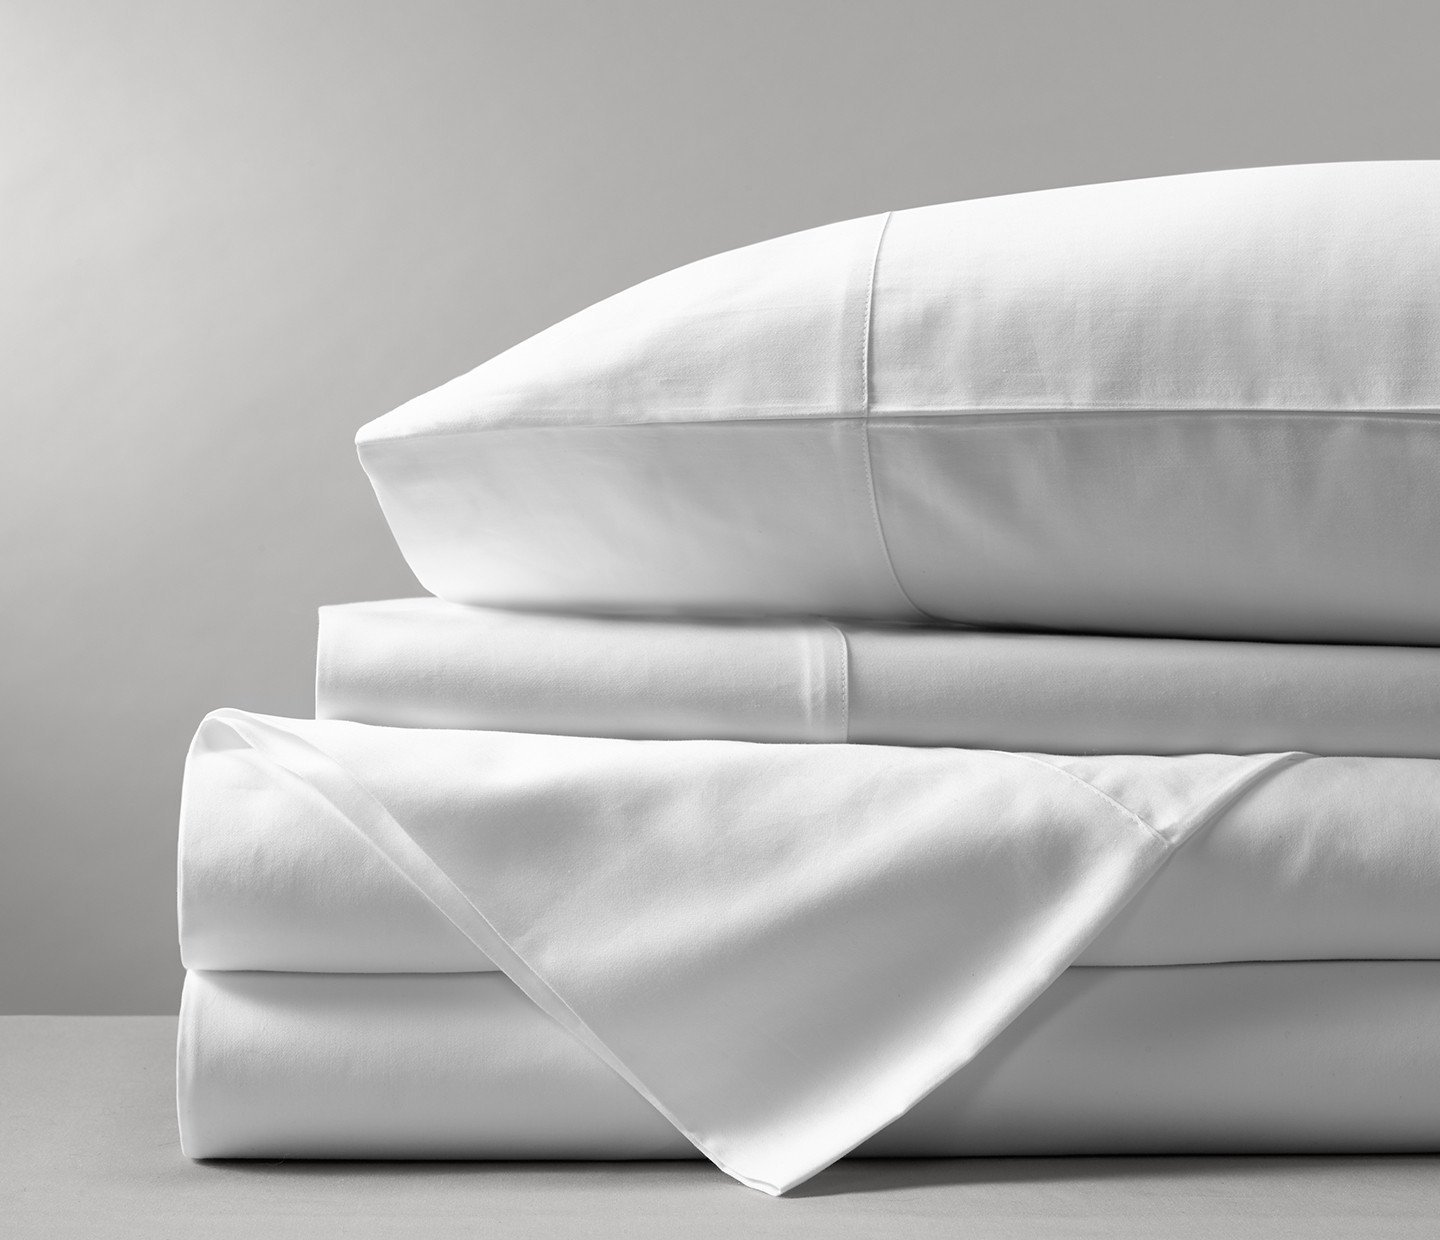 Bamboo Sheets by Bamboo Tranquility - Supreme Quality 4 Piece Bamboo Bed Sheets Set (King, White)